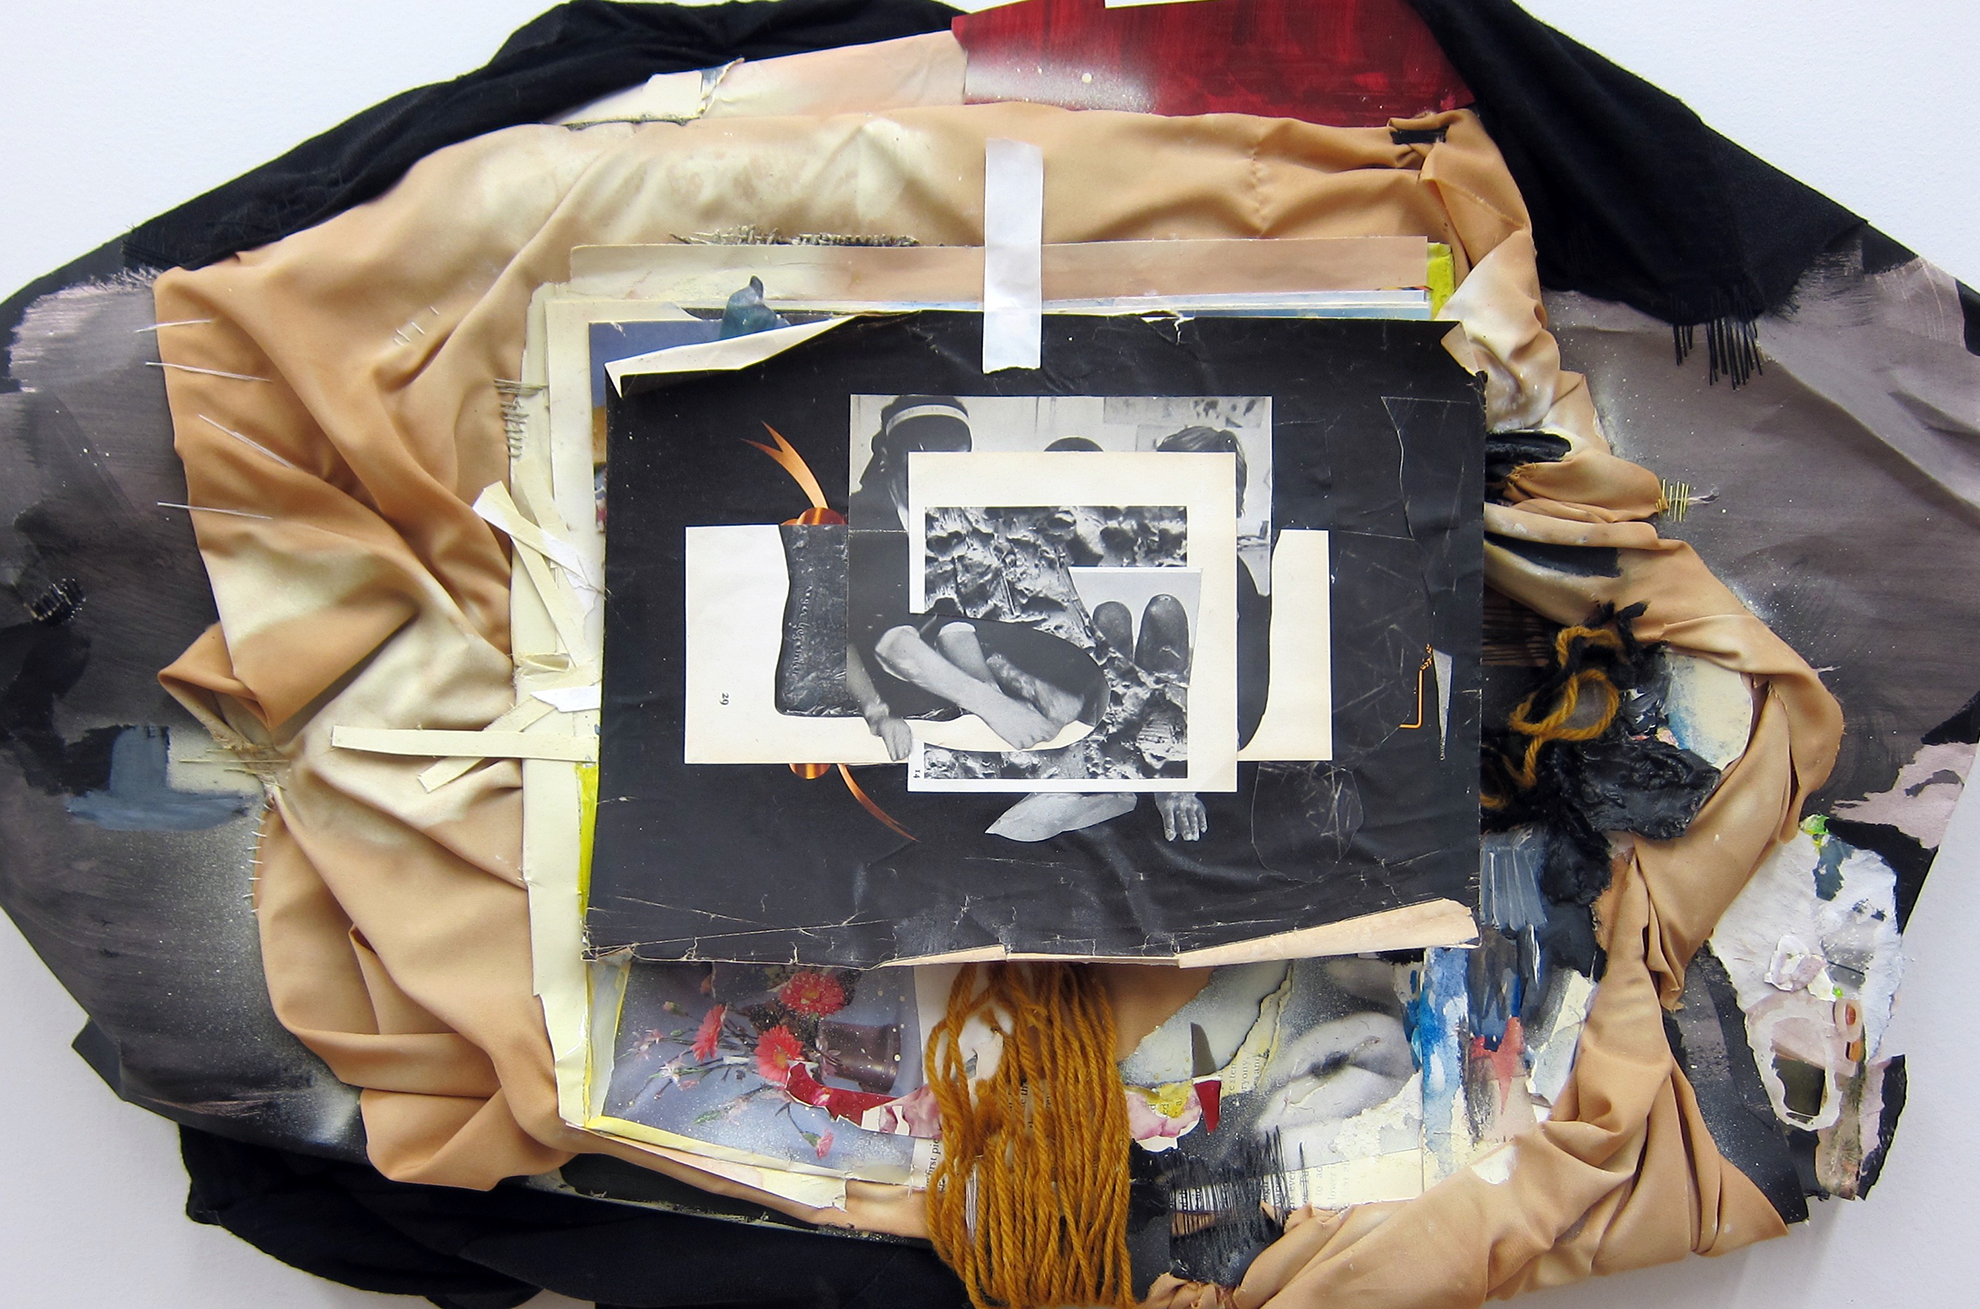 Remains (Keep It Together)  (Detail), 2015, Fabric, collage, acrylic, spray-paint, thread, string, UV glaze, frames, 82 x 63 x 4 inches